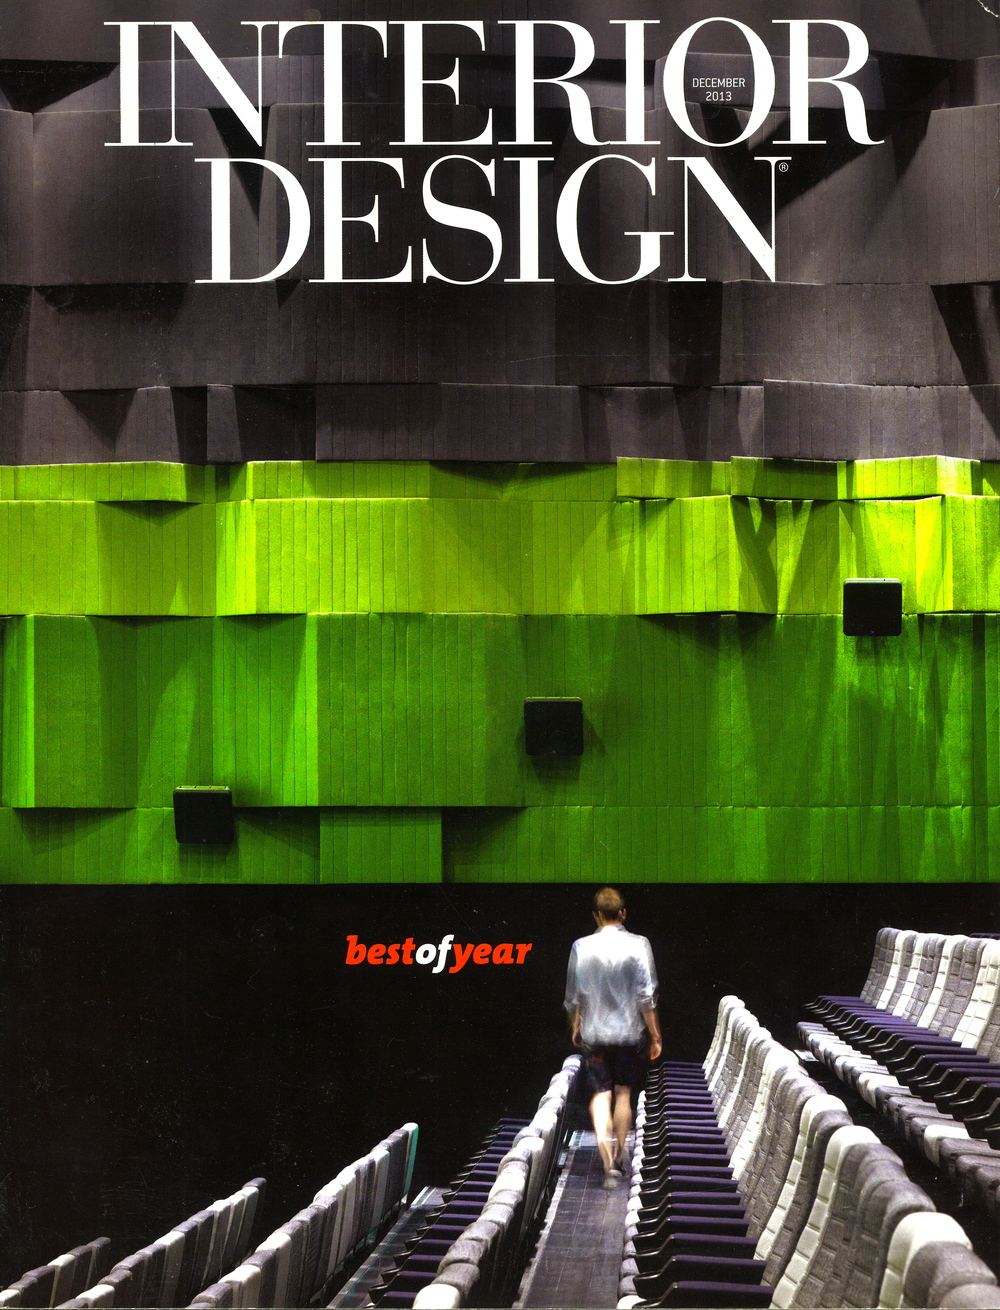 Interior Design_Dec 2013-cover.jpg